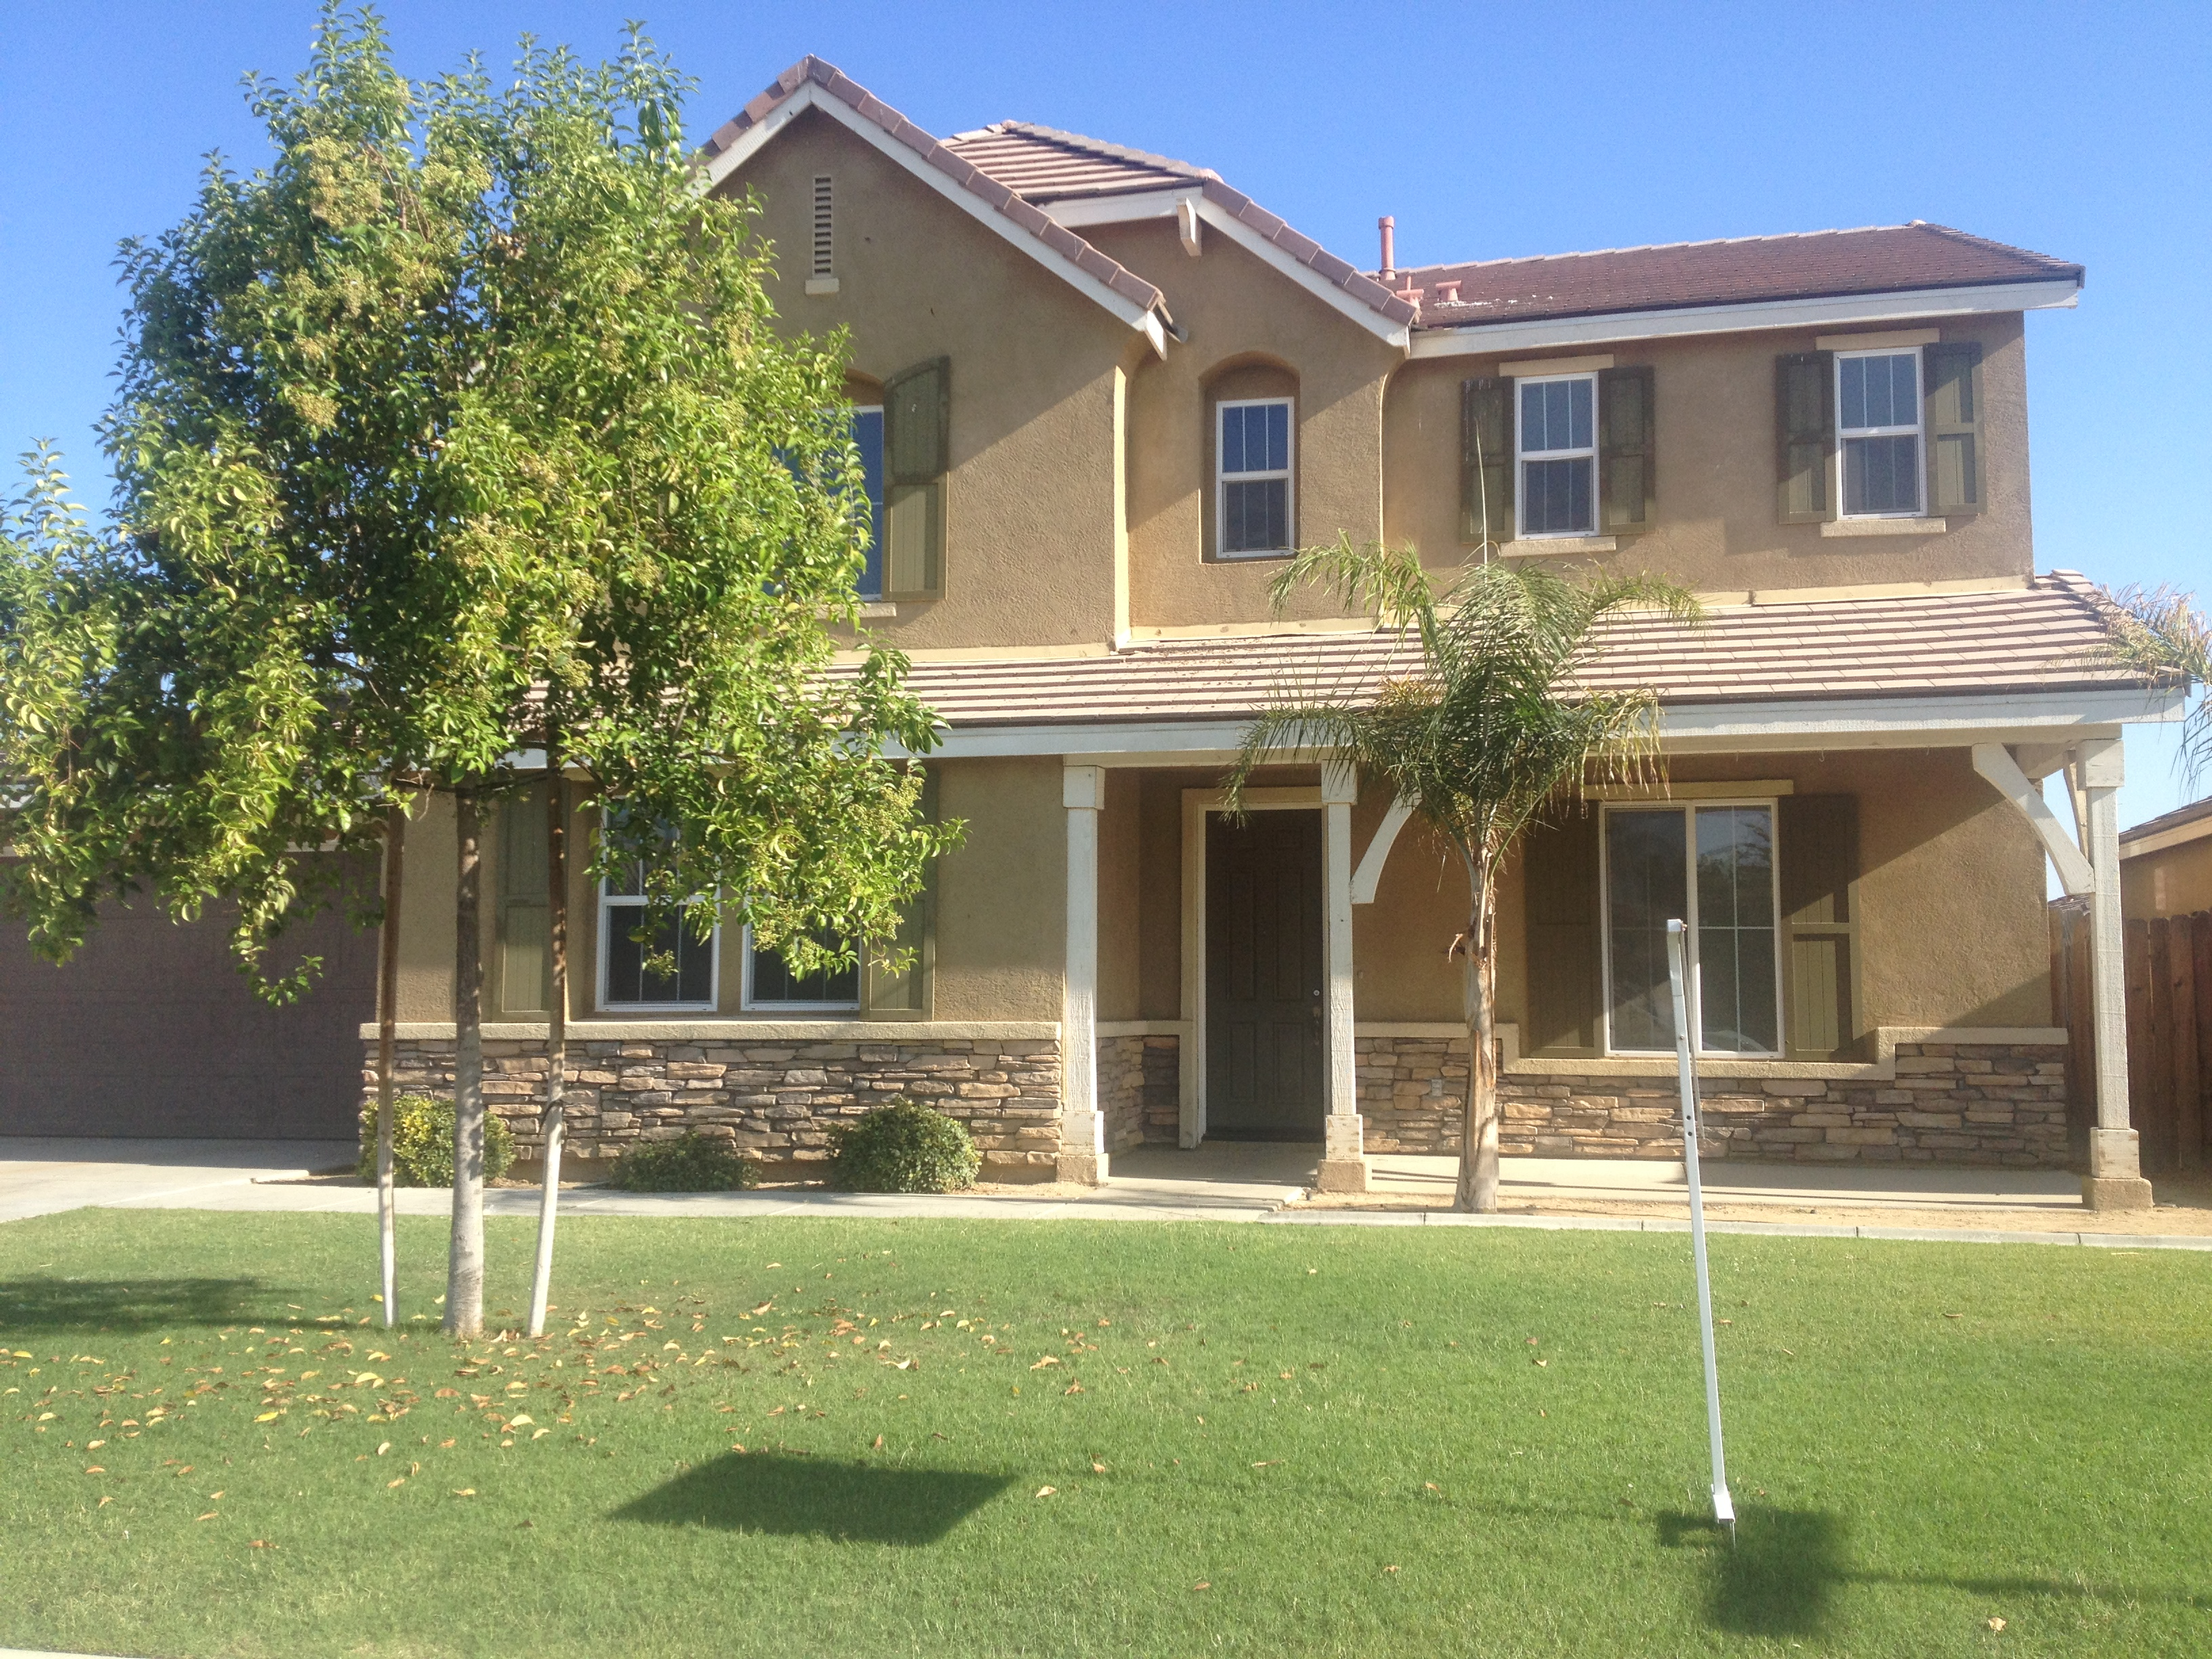 $1795 – 12300 Trackside Dr., Bakersfield, CA 93312 rented northwest home